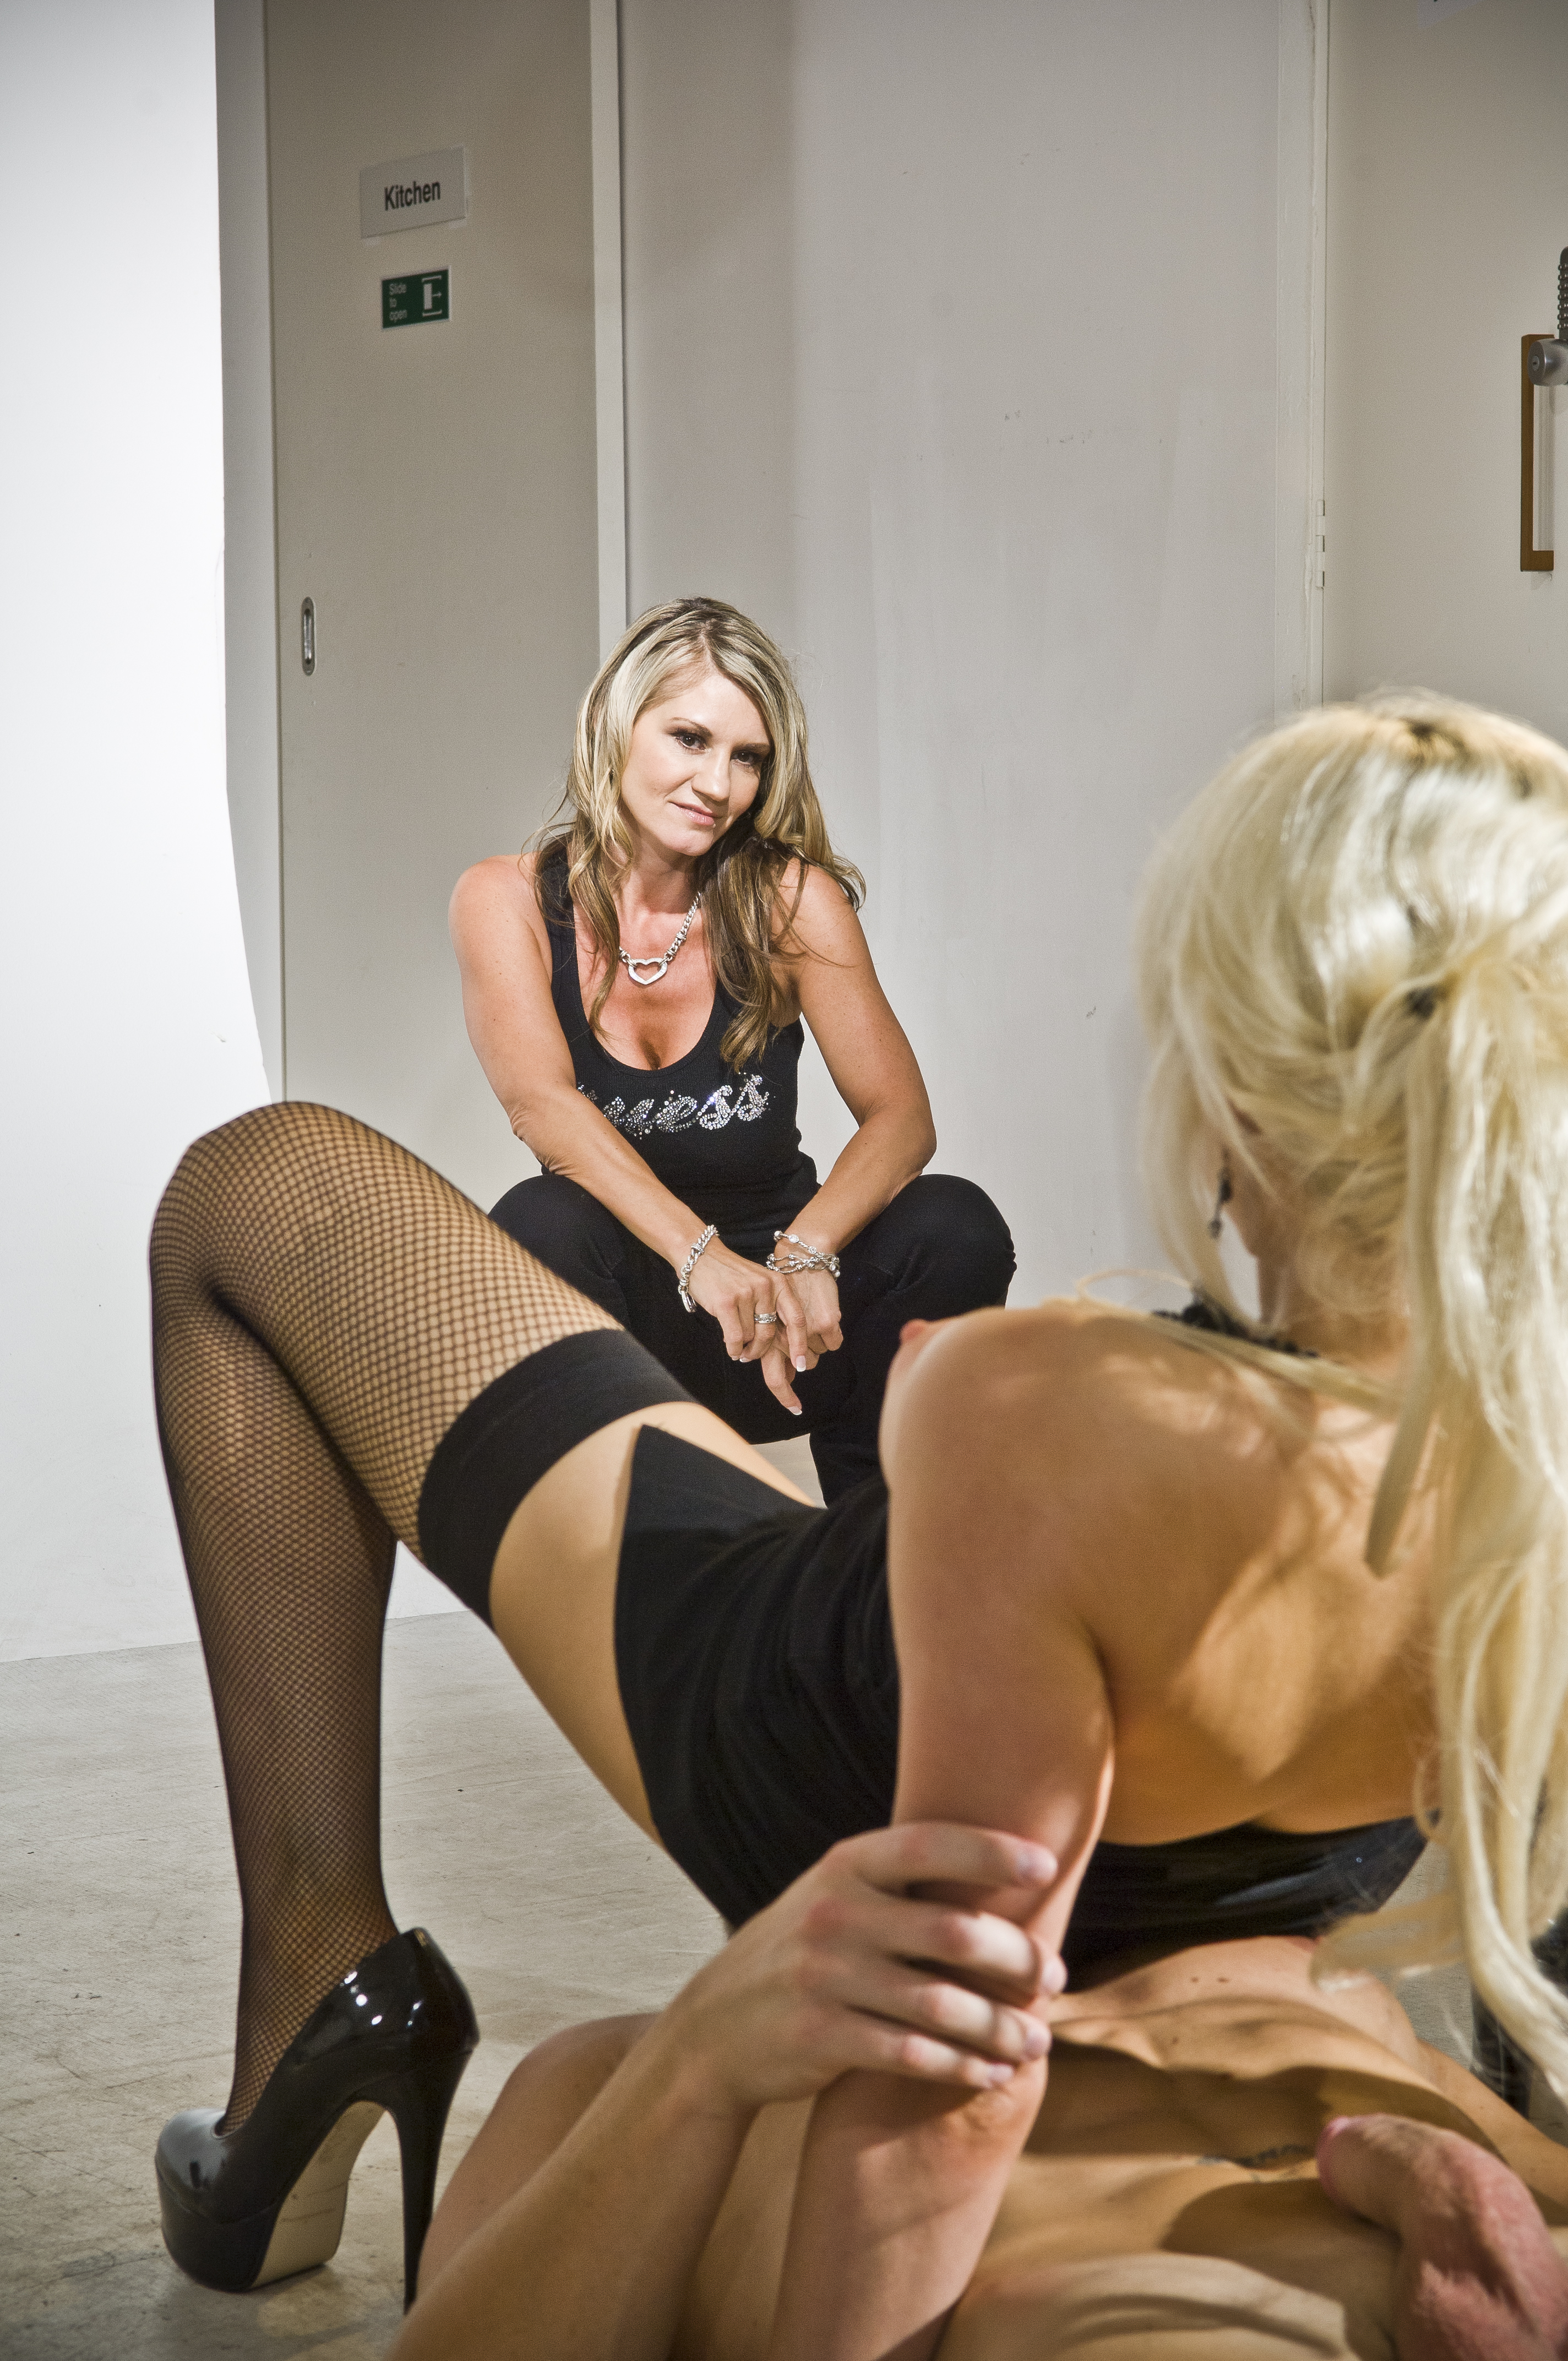 image Blonde syren sexton fucked doggystyle by a buff hunk